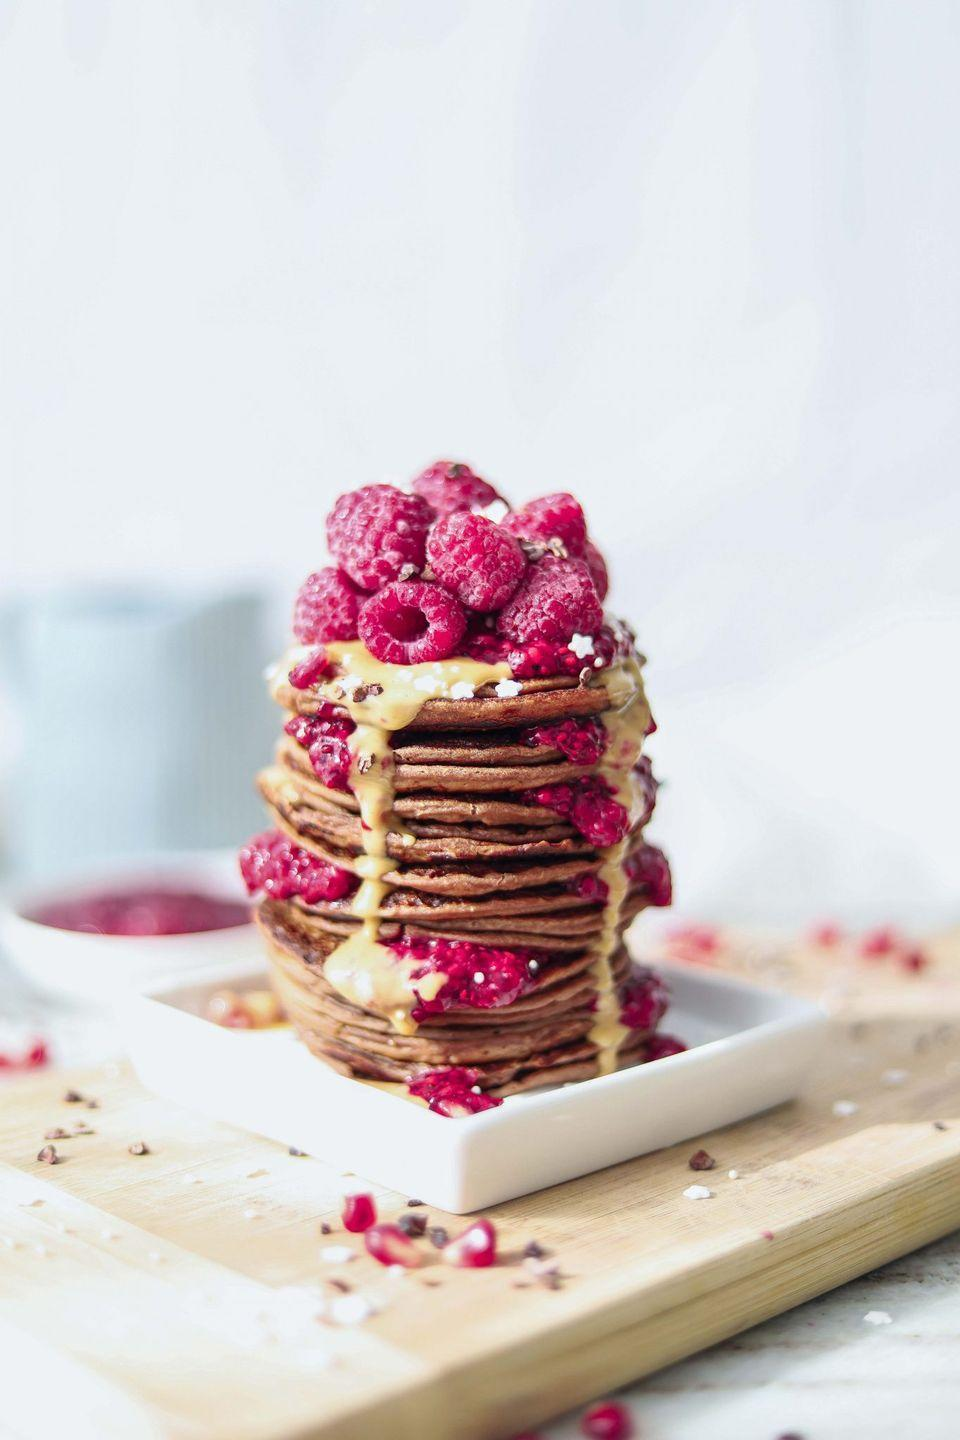 "<p>Fresh, juicy raspberries? Check. Healthy fat-packed chia seeds for added crunch? Check. Moist, vegan-friendly pancakes? Triple check. This is a recipe for success.</p><p>Try the recipe for yourself: <a class=""link rapid-noclick-resp"" href=""https://www.twospoons.ca/recipe/healthy-vegan-protein-pancakes/"" rel=""nofollow noopener"" target=""_blank"" data-ylk=""slk:twospoons.ca"">twospoons.ca</a></p>"